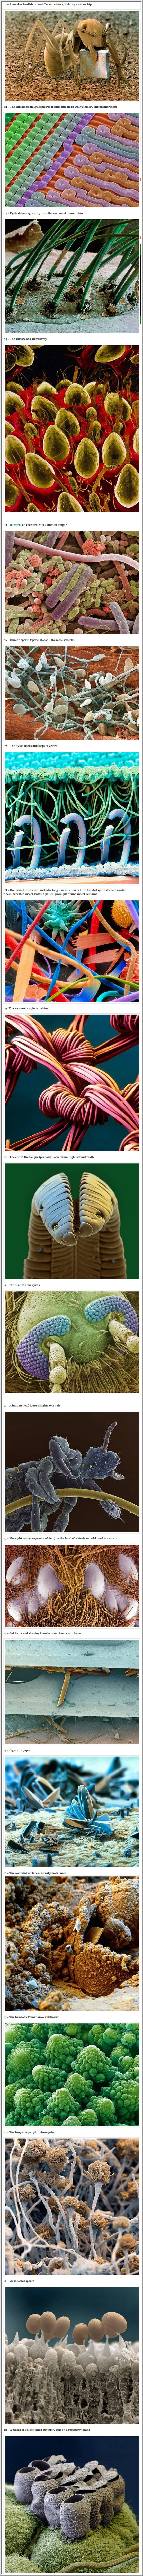 Microscopic pictures of various things, living or not